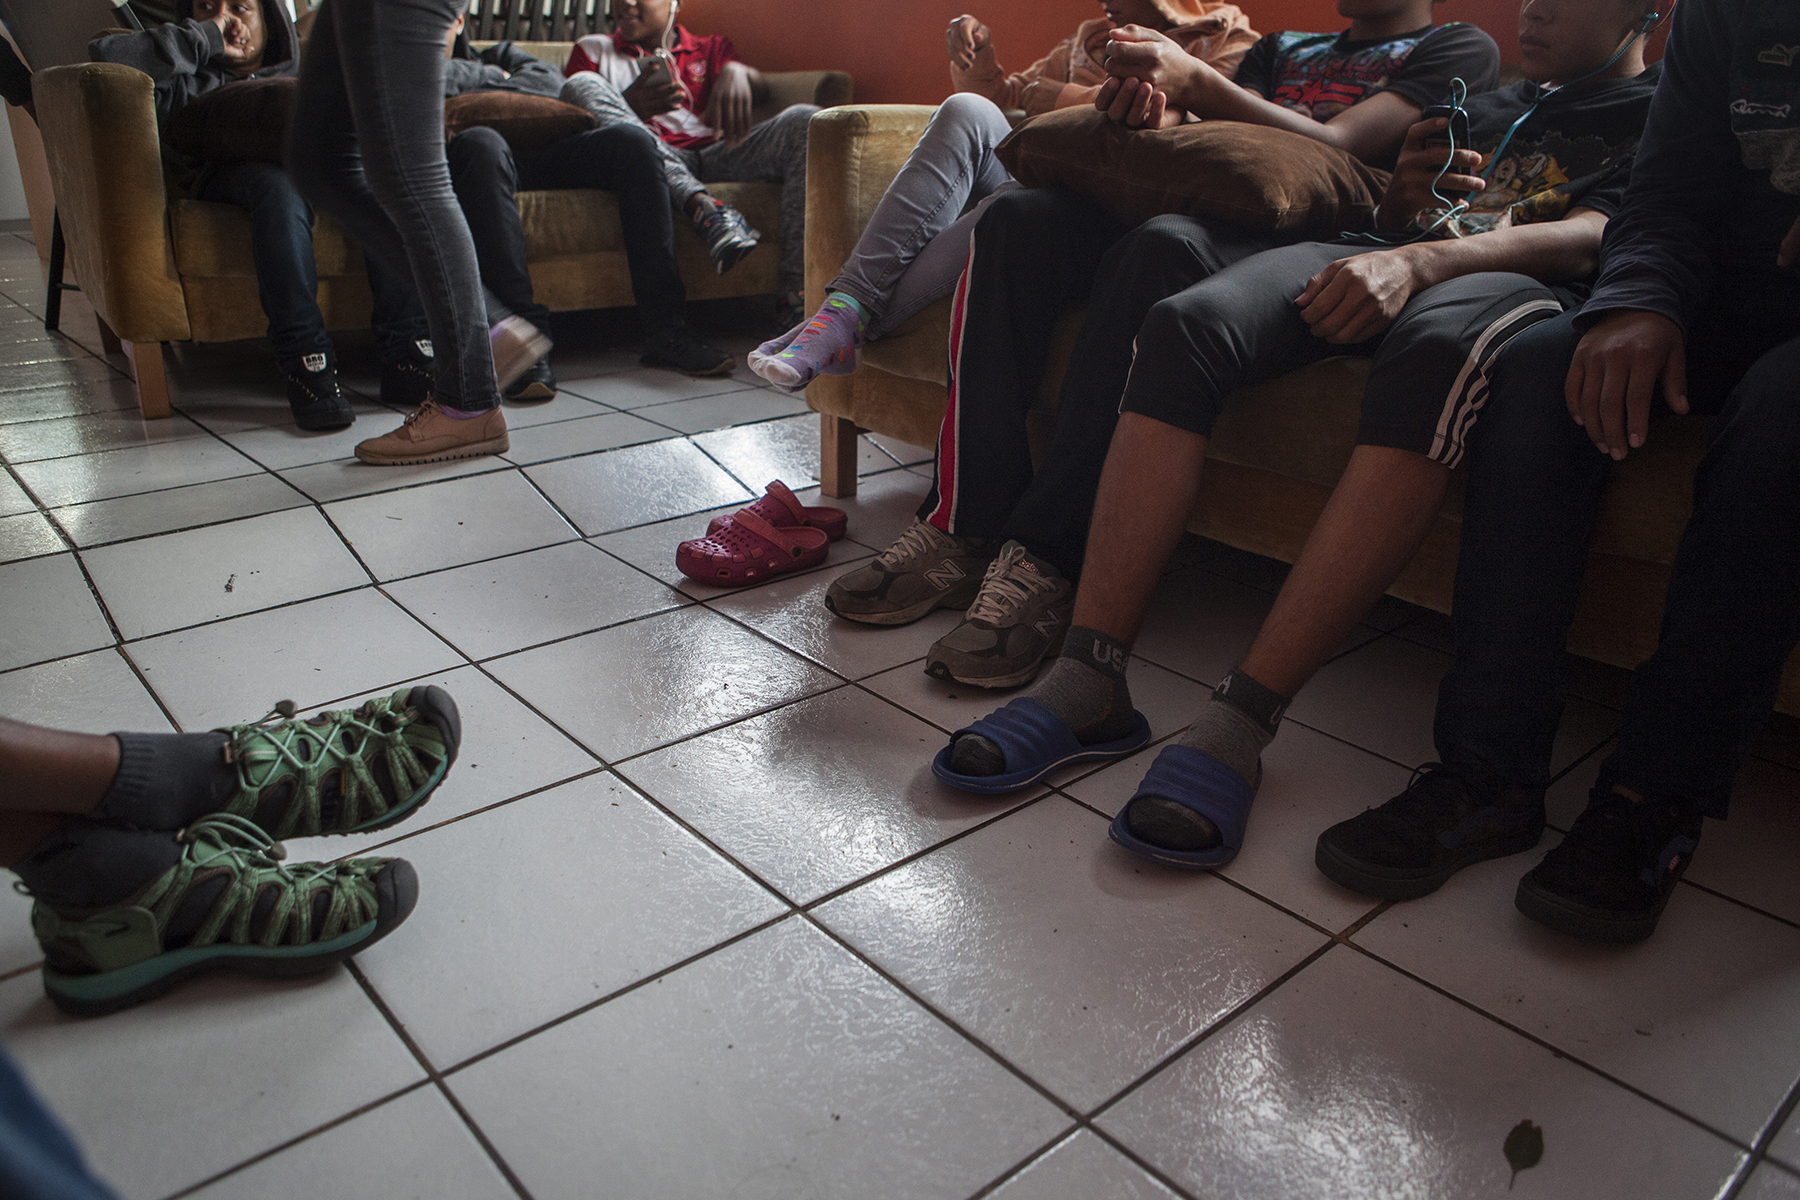 Unaccompanied child and teenage migrants stay in Tijuana, Mexico's only shelter for minors on November 29, 2018. CREDIT: Erin Siegal McIntyre for Frontline